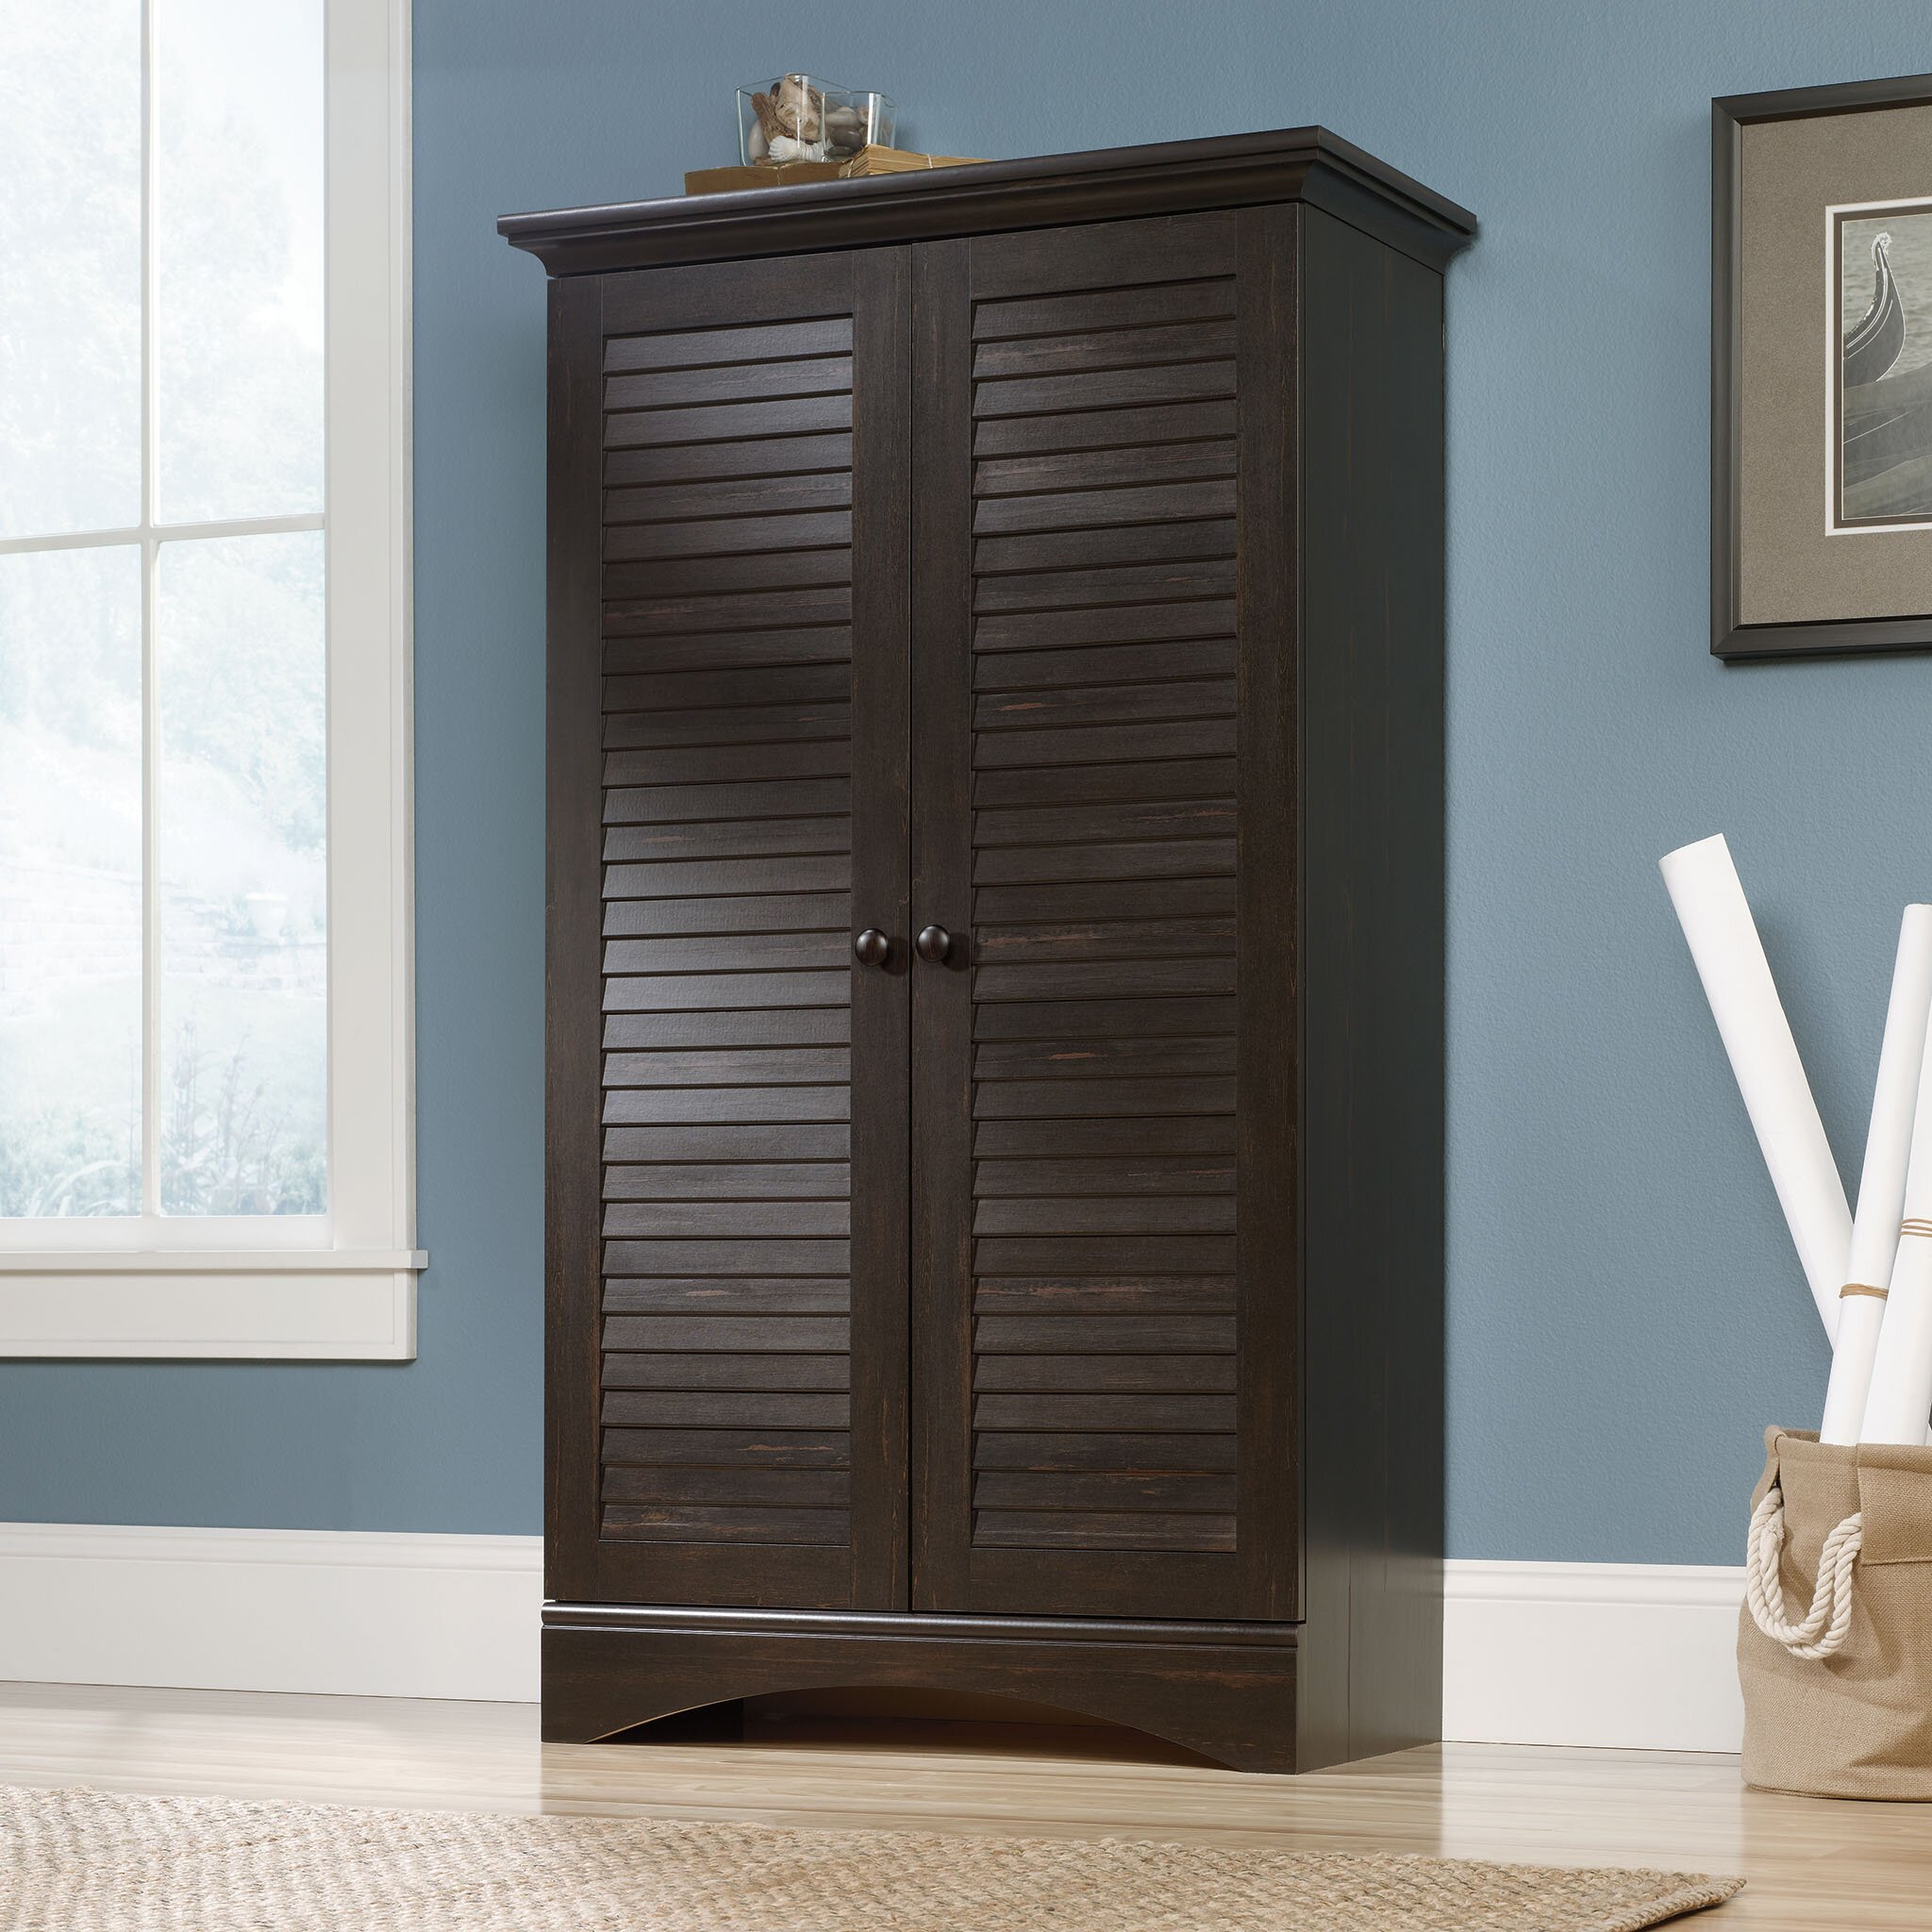 Home Depot Cabinets Review: Beachcrest Home Pinellas 2 Door Storage Cabinet & Reviews